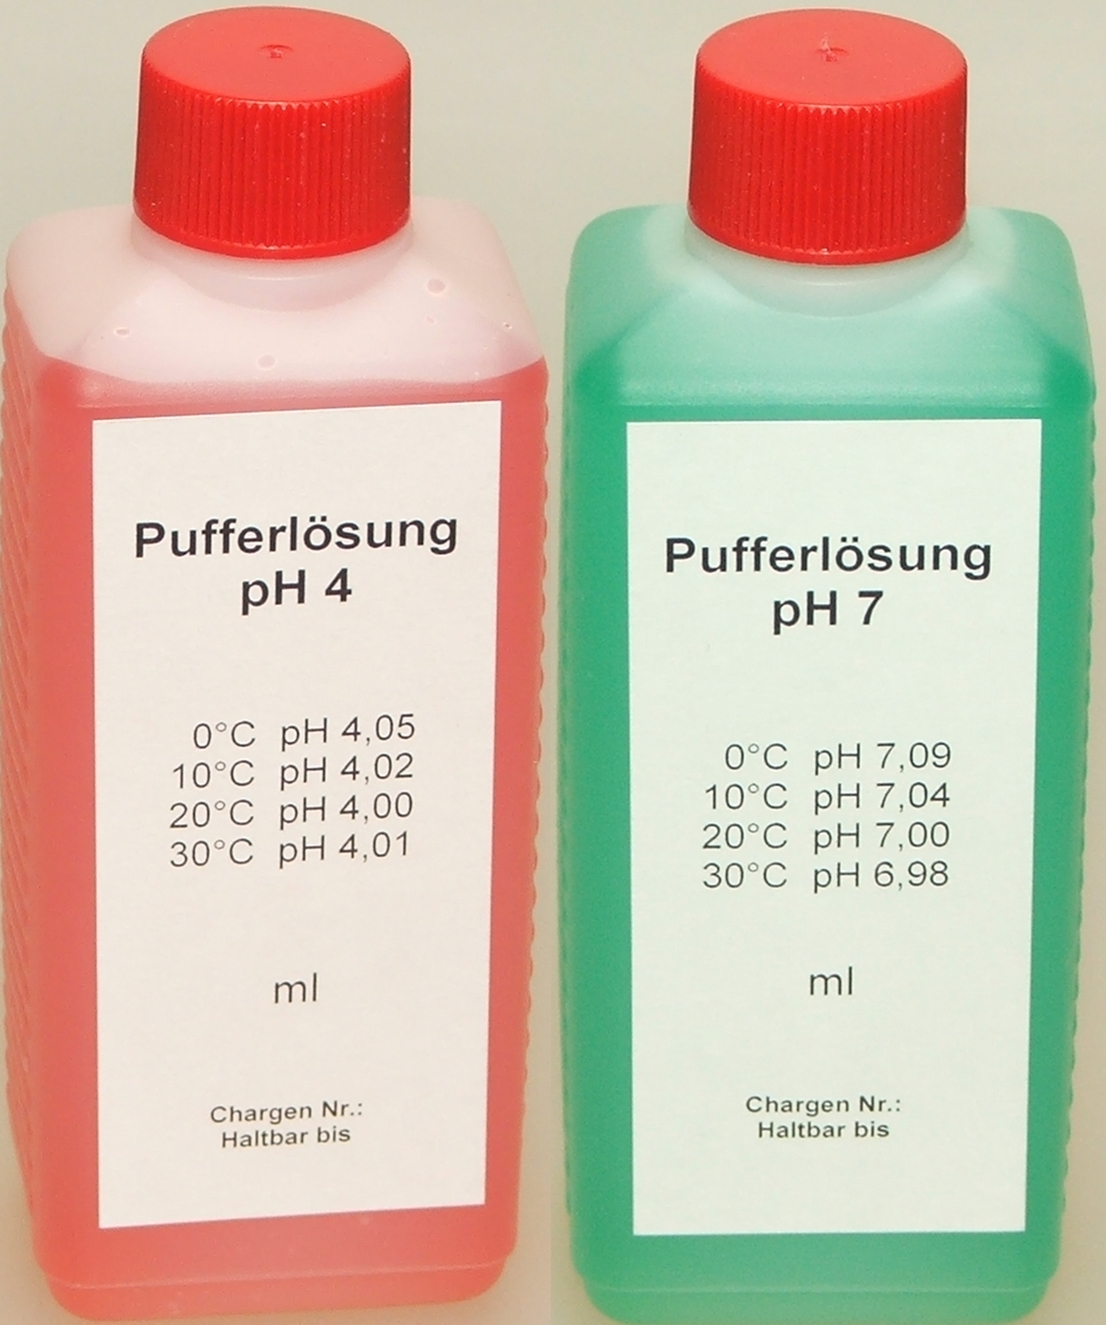 Pufferlösung / Eichlösung Set je 250 ml pH4 + pH7